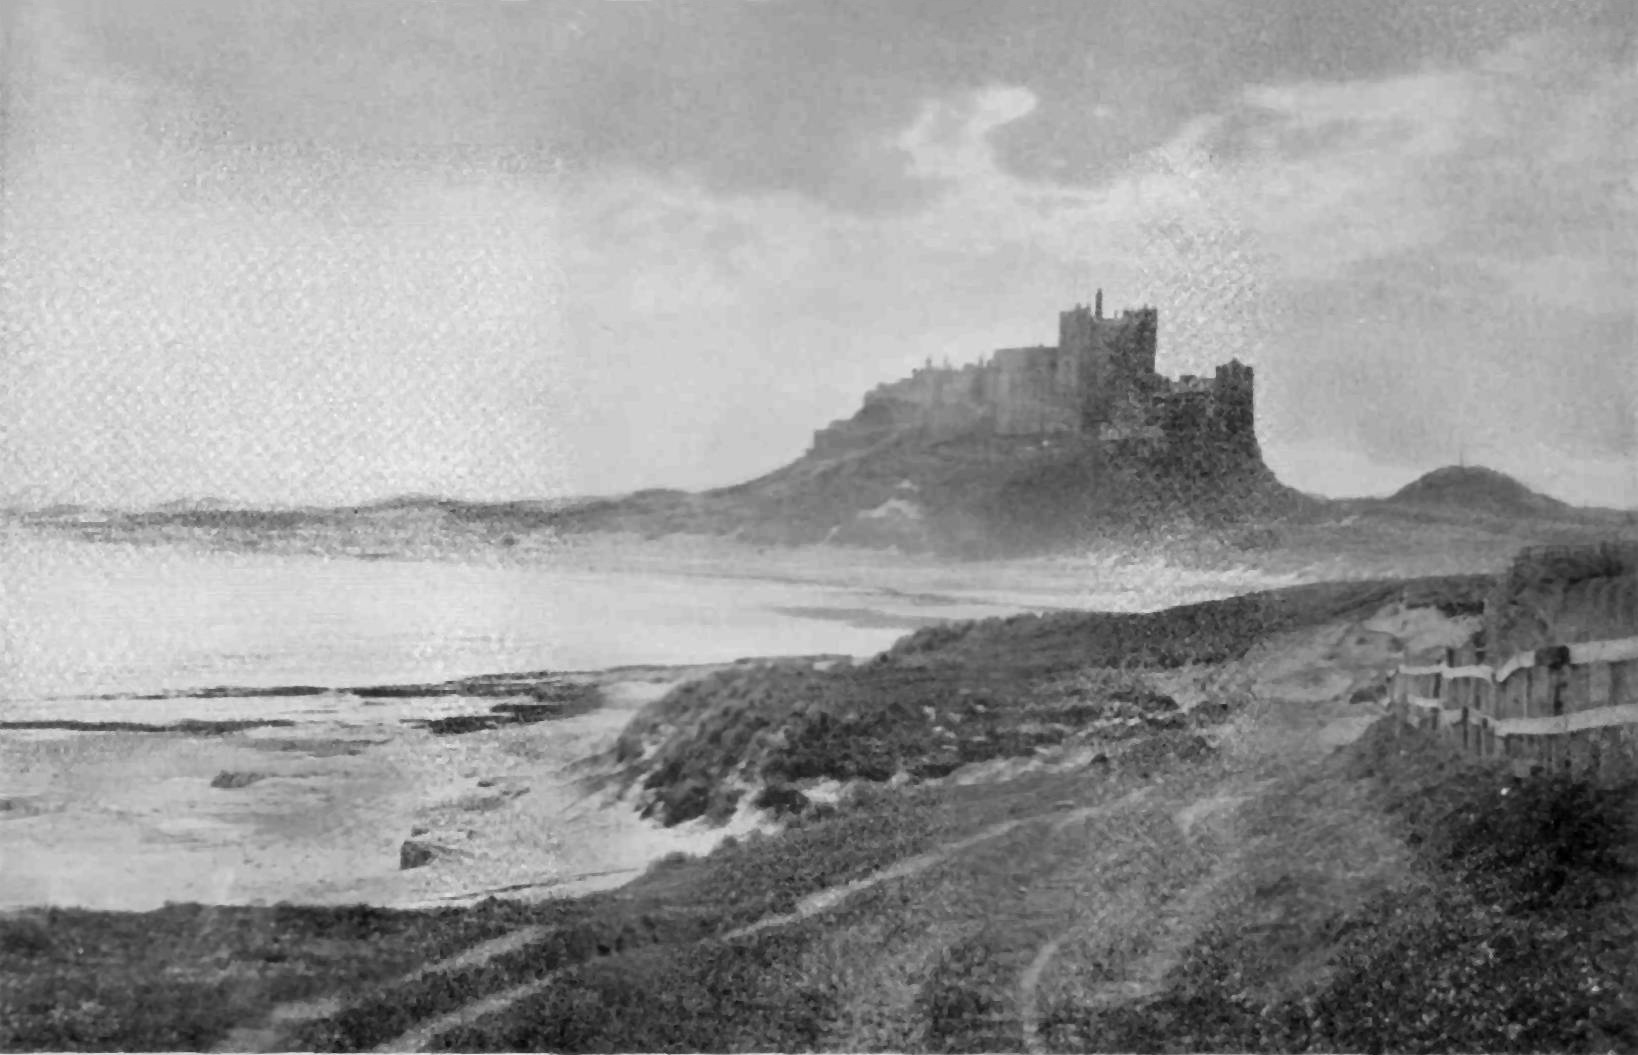 The Project Gutenberg eBook of Northumberland Yesterday and